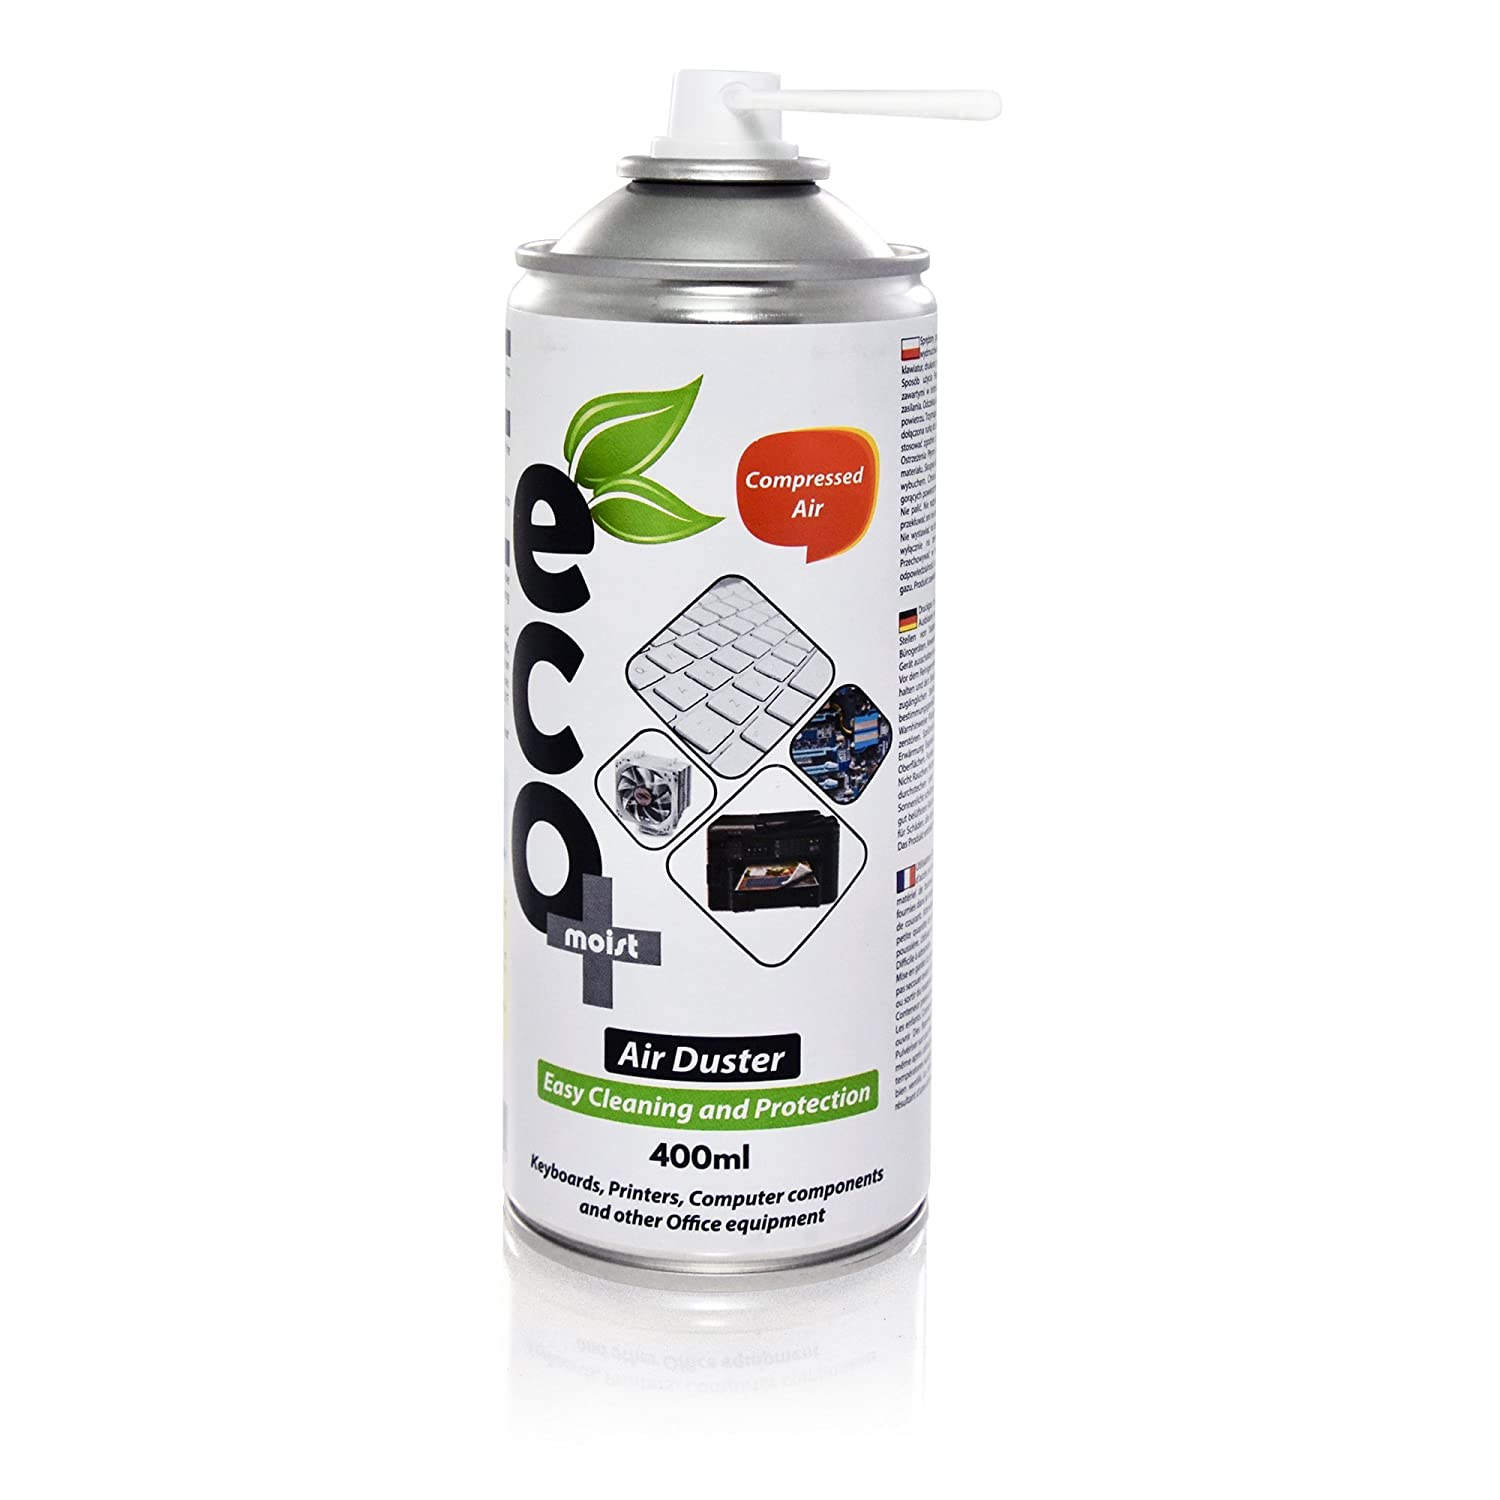 Air Duster Ecomoist (400ml) x2, Excellent for Keyboards, Printers, Computer Components and Other Office Equipment, Laptop Cleaner, PC Cleaning Kit (Pack Set of 2) TwinPol